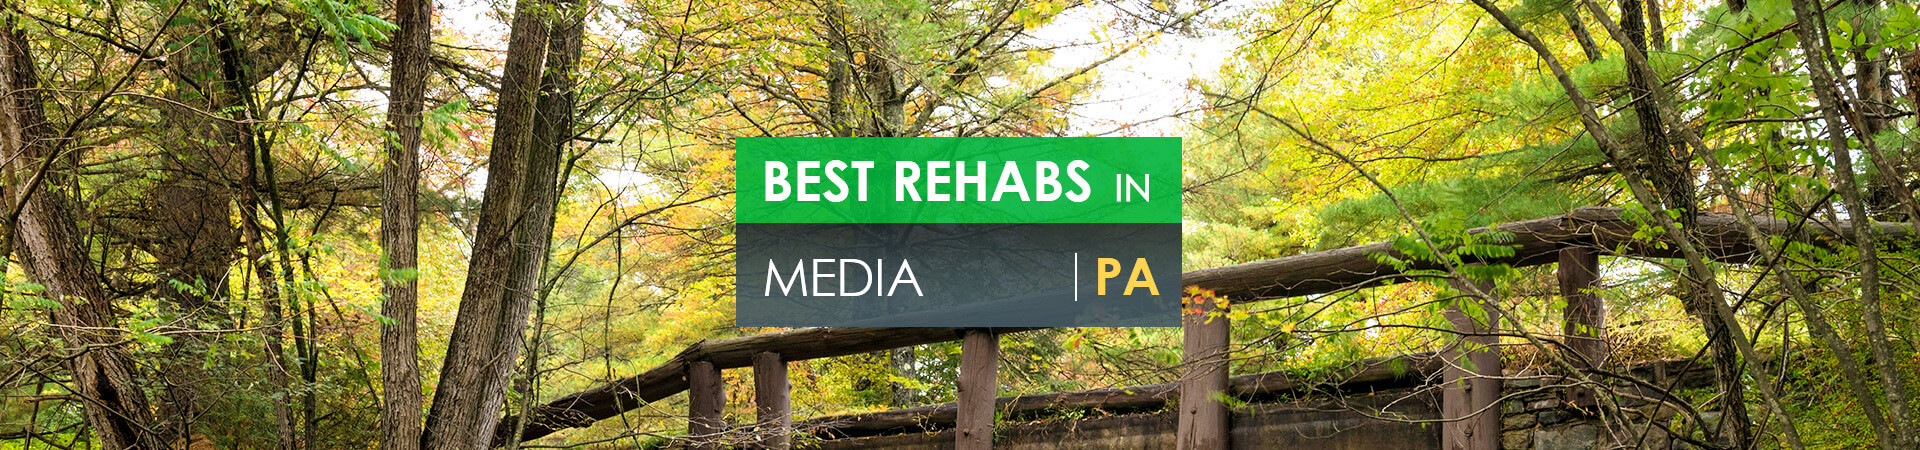 Best rehabs in Media, PA